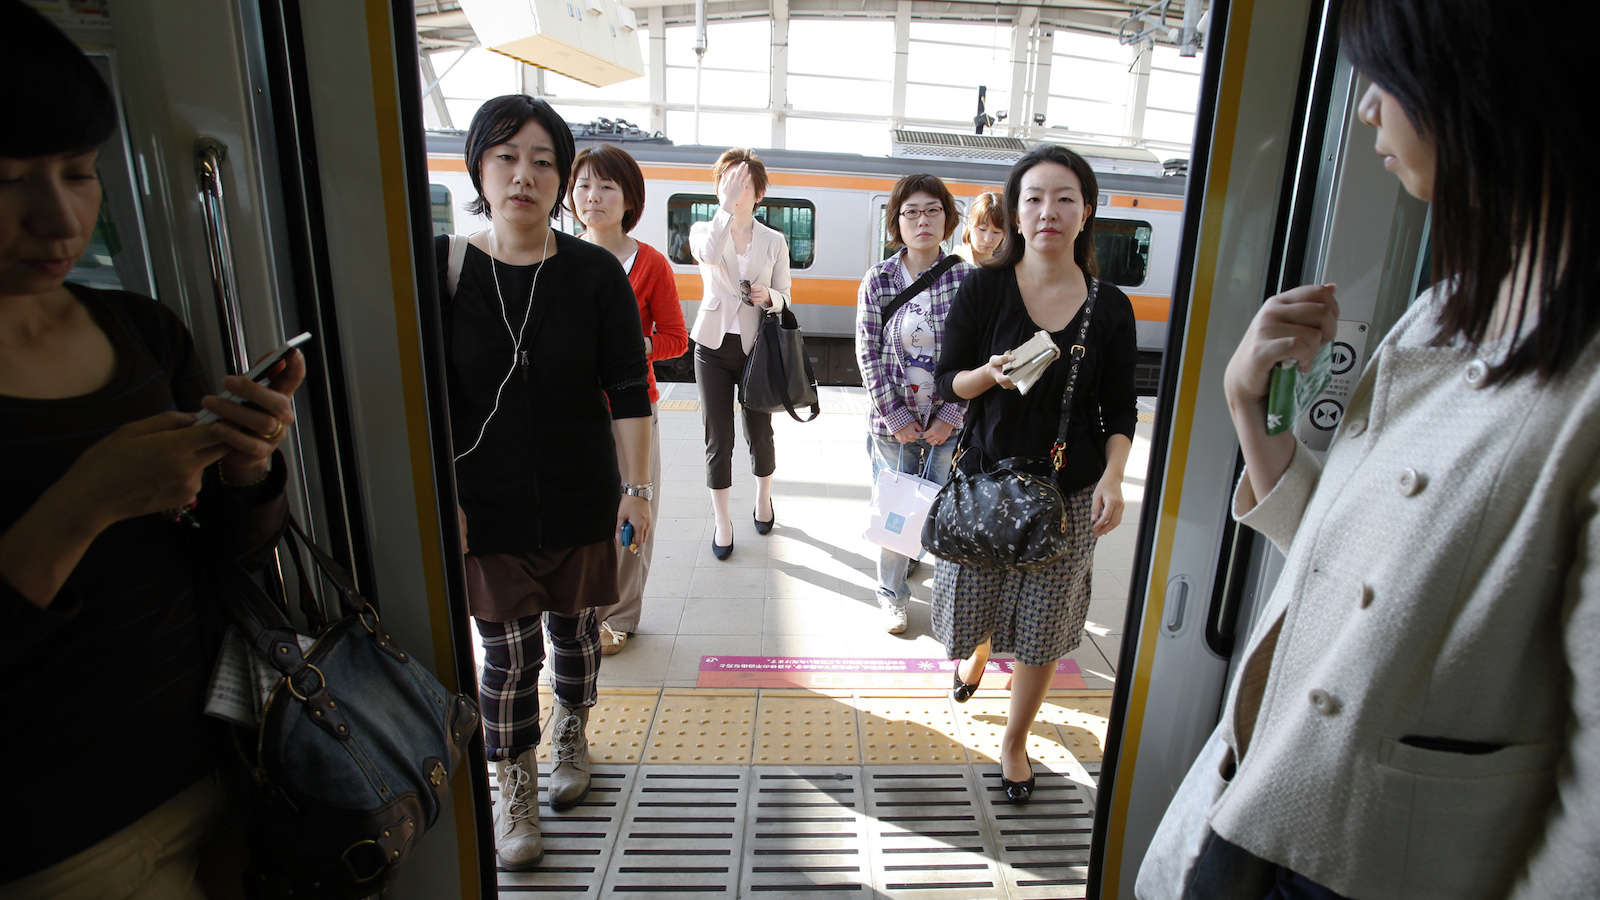 Japan is trying to encourage more women to enter the workforce—but for what benefit?